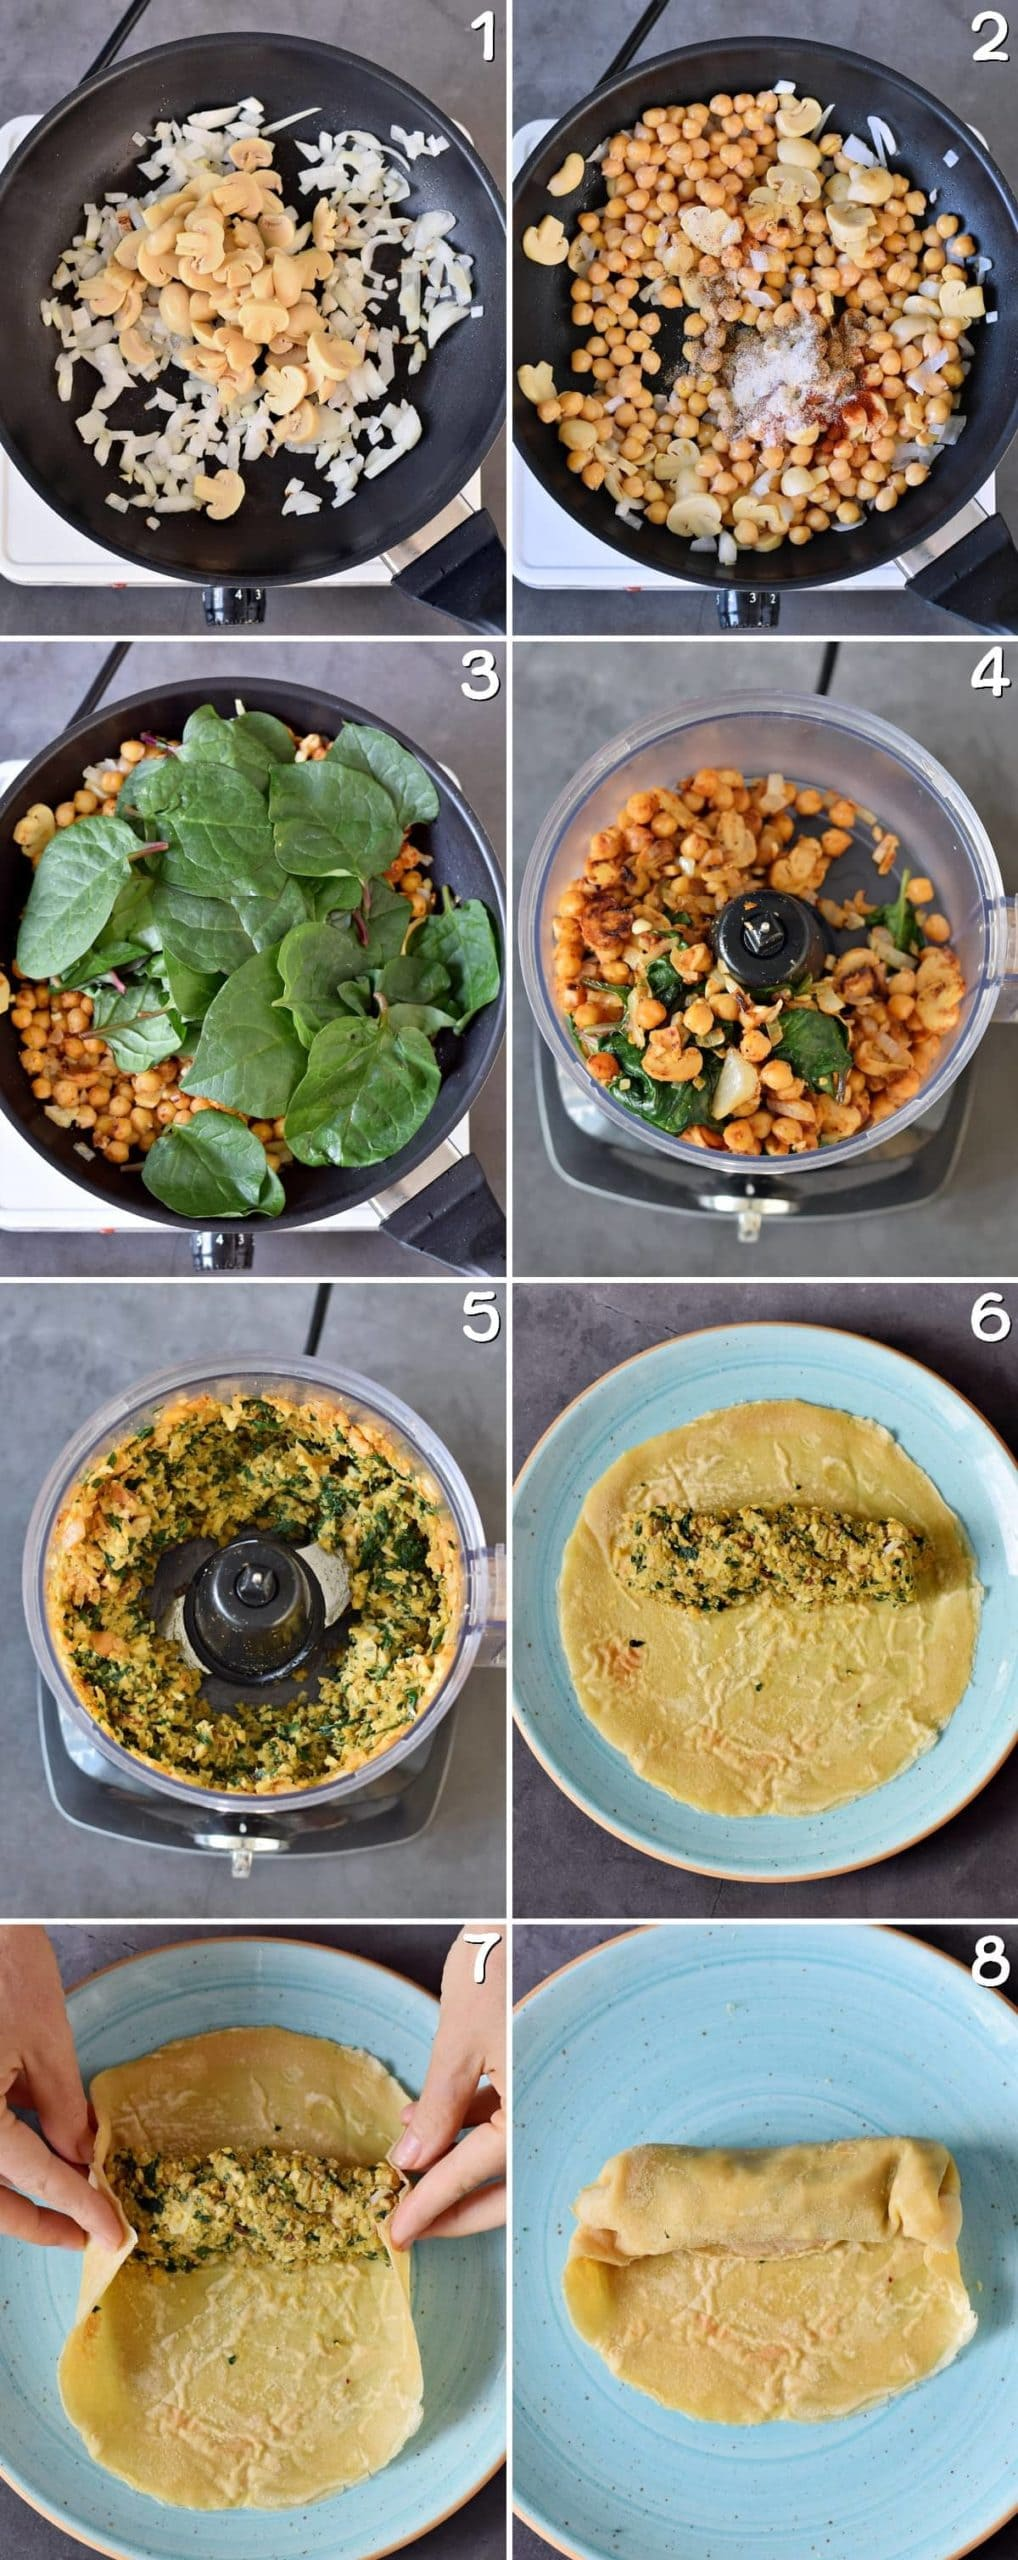 8 step-by-step photos of how to make savory vegan crepes